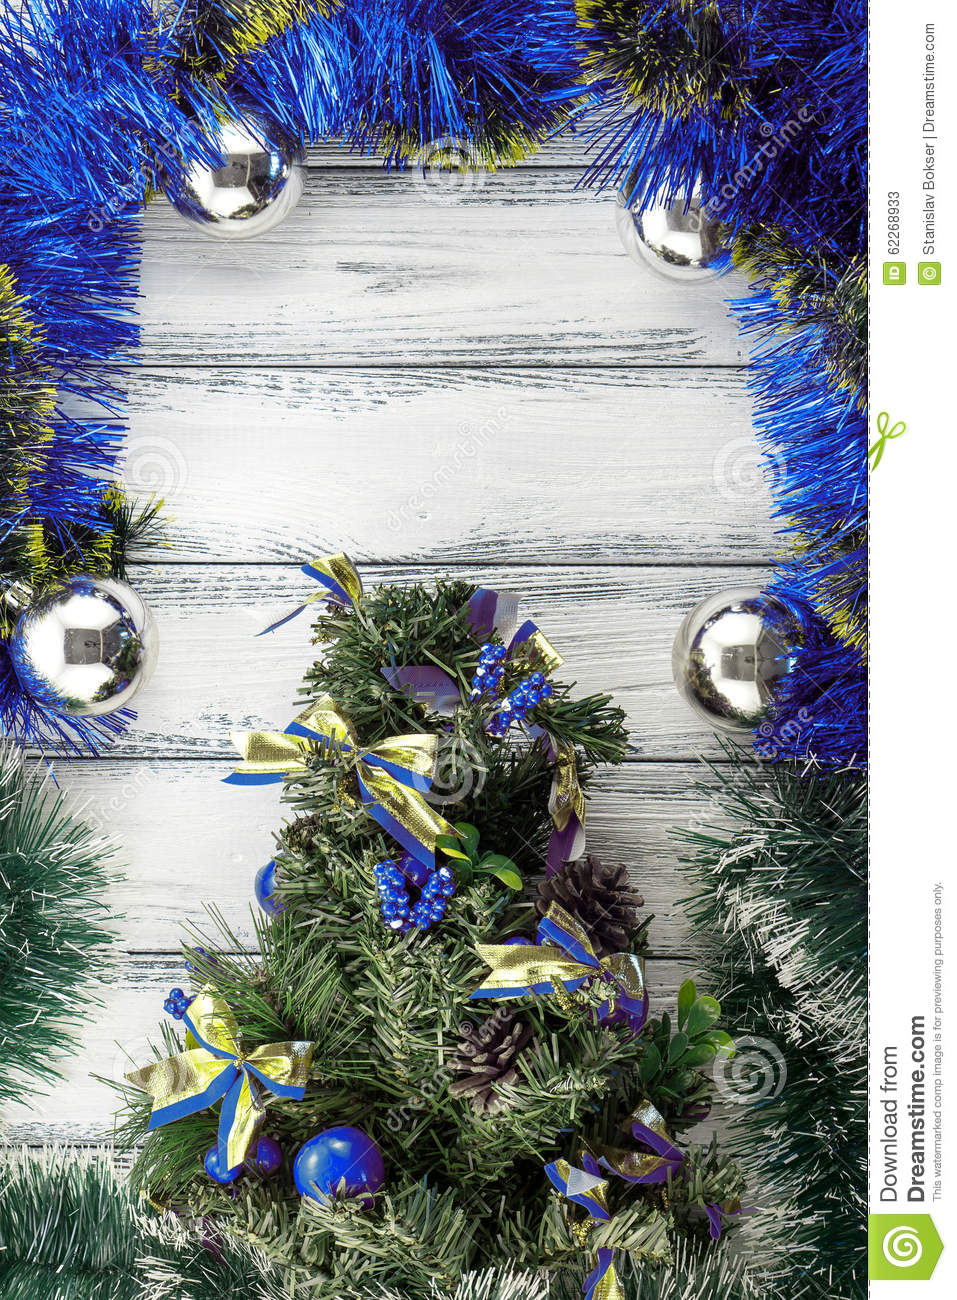 New Year Theme Christmas Tree With Blue And Green